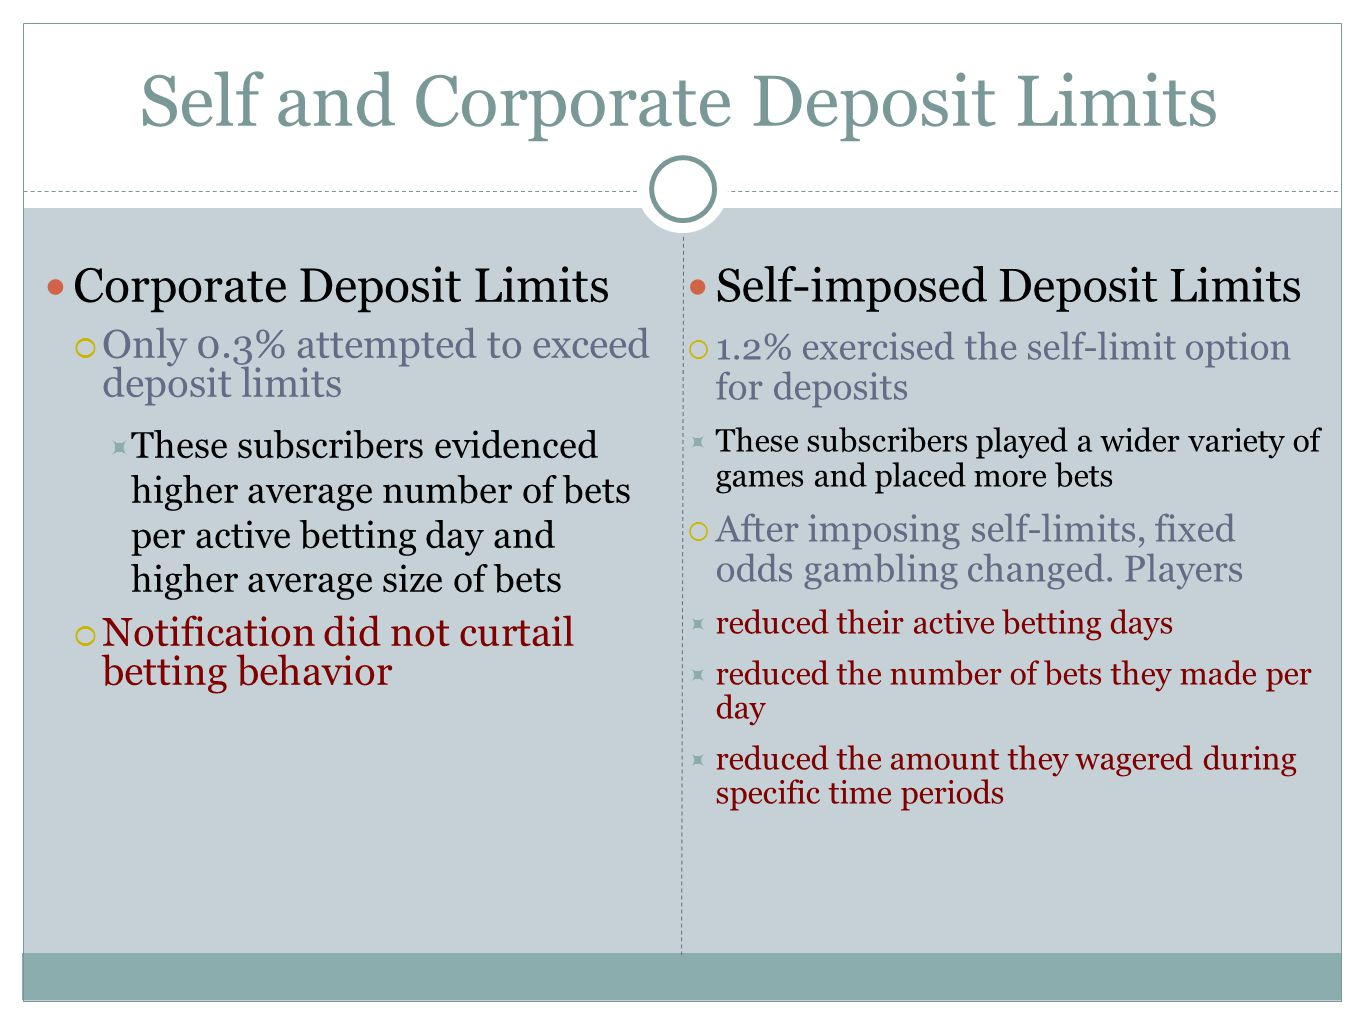 Self and Corporate Deposit Limits Corporate Deposit Limits Only 0.3% attempted to exceed deposit limits These subscribers evidenced higher average number of bets per active betting day and higher average size of bets Notification did not curtail betting behavior Self-imposed Deposit Limits 1.2% exercised the self-limit option for deposits These subscribers played a wider variety of games and placed more bets After imposing self-limits, fixed odds gambling changed.